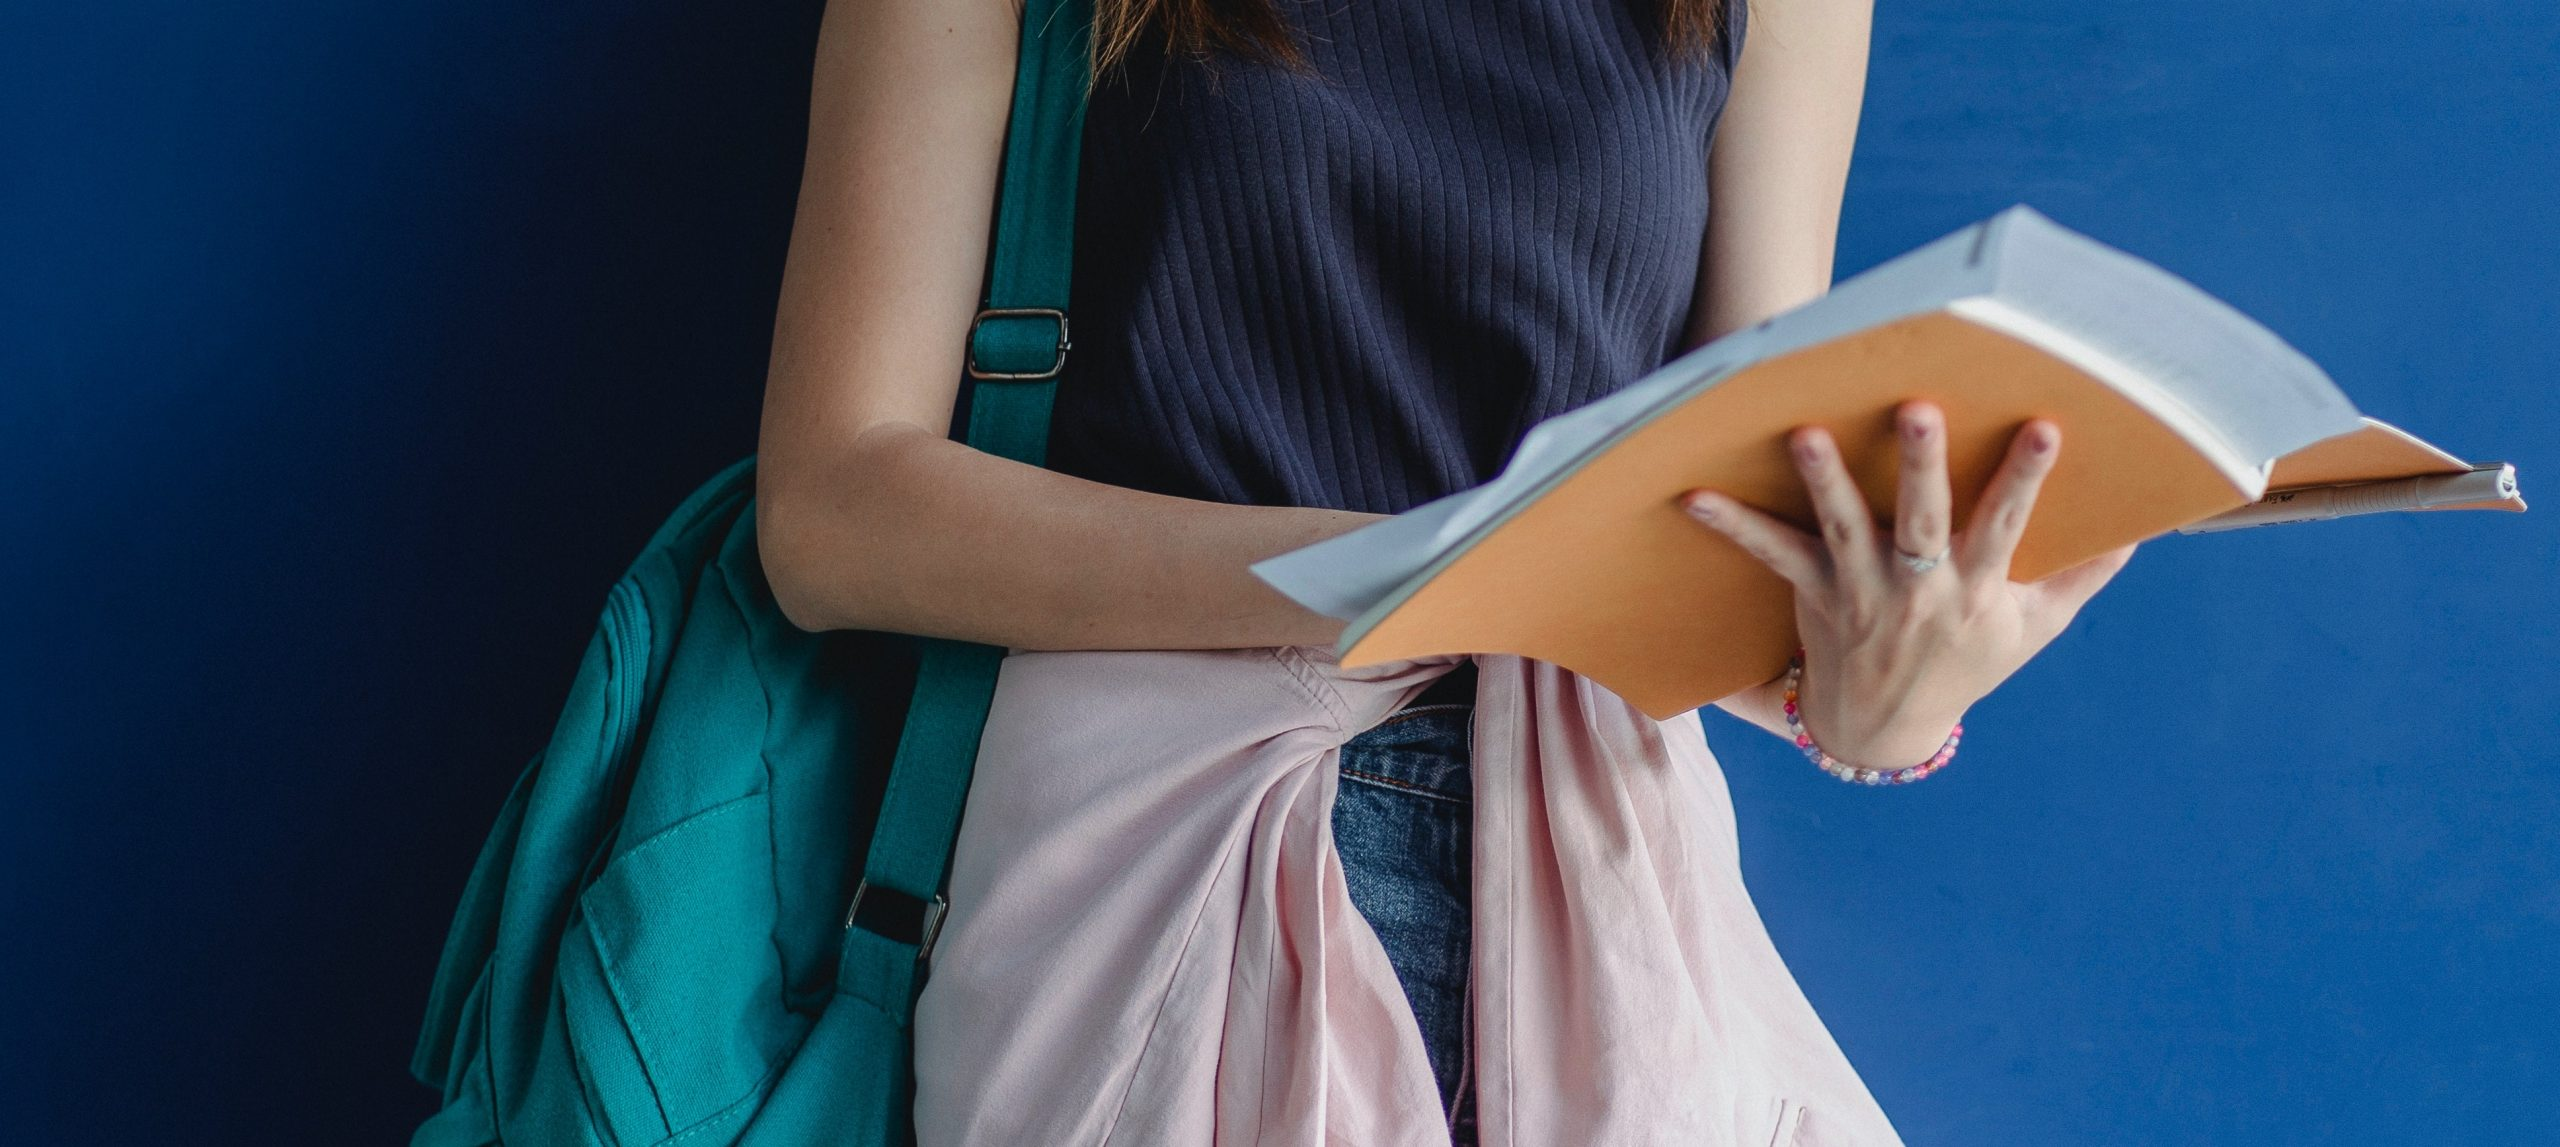 Woman holding book with backpack on shoulder